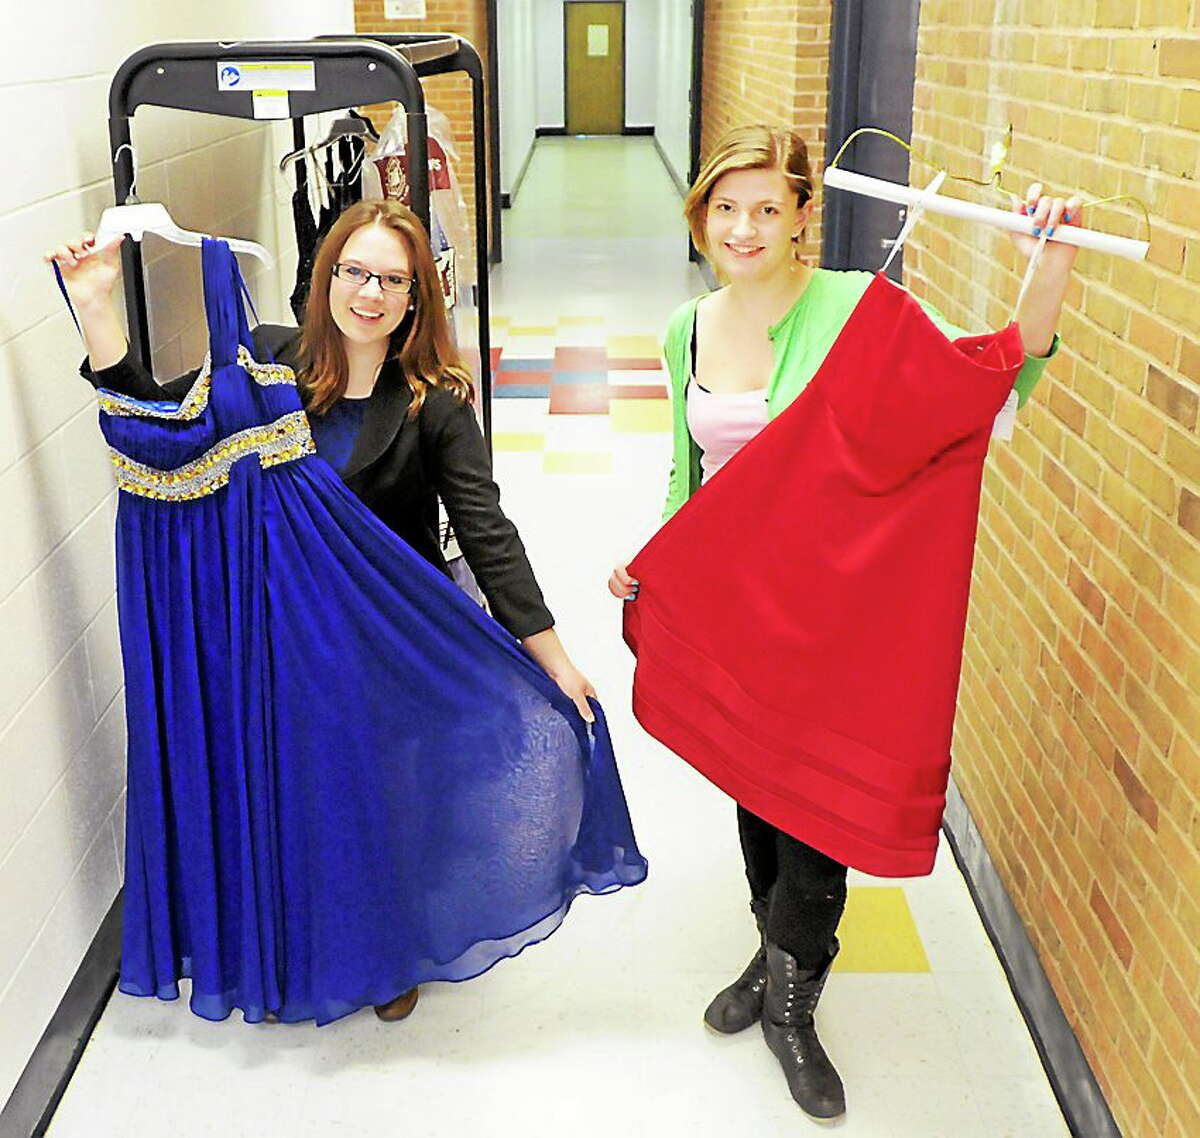 Peter Hvizdak / New Haven Register Operation Glass Slipper fulfills the senior project ¬ prerequisite that every Old Saybrook High School student must complete prior to graduation.